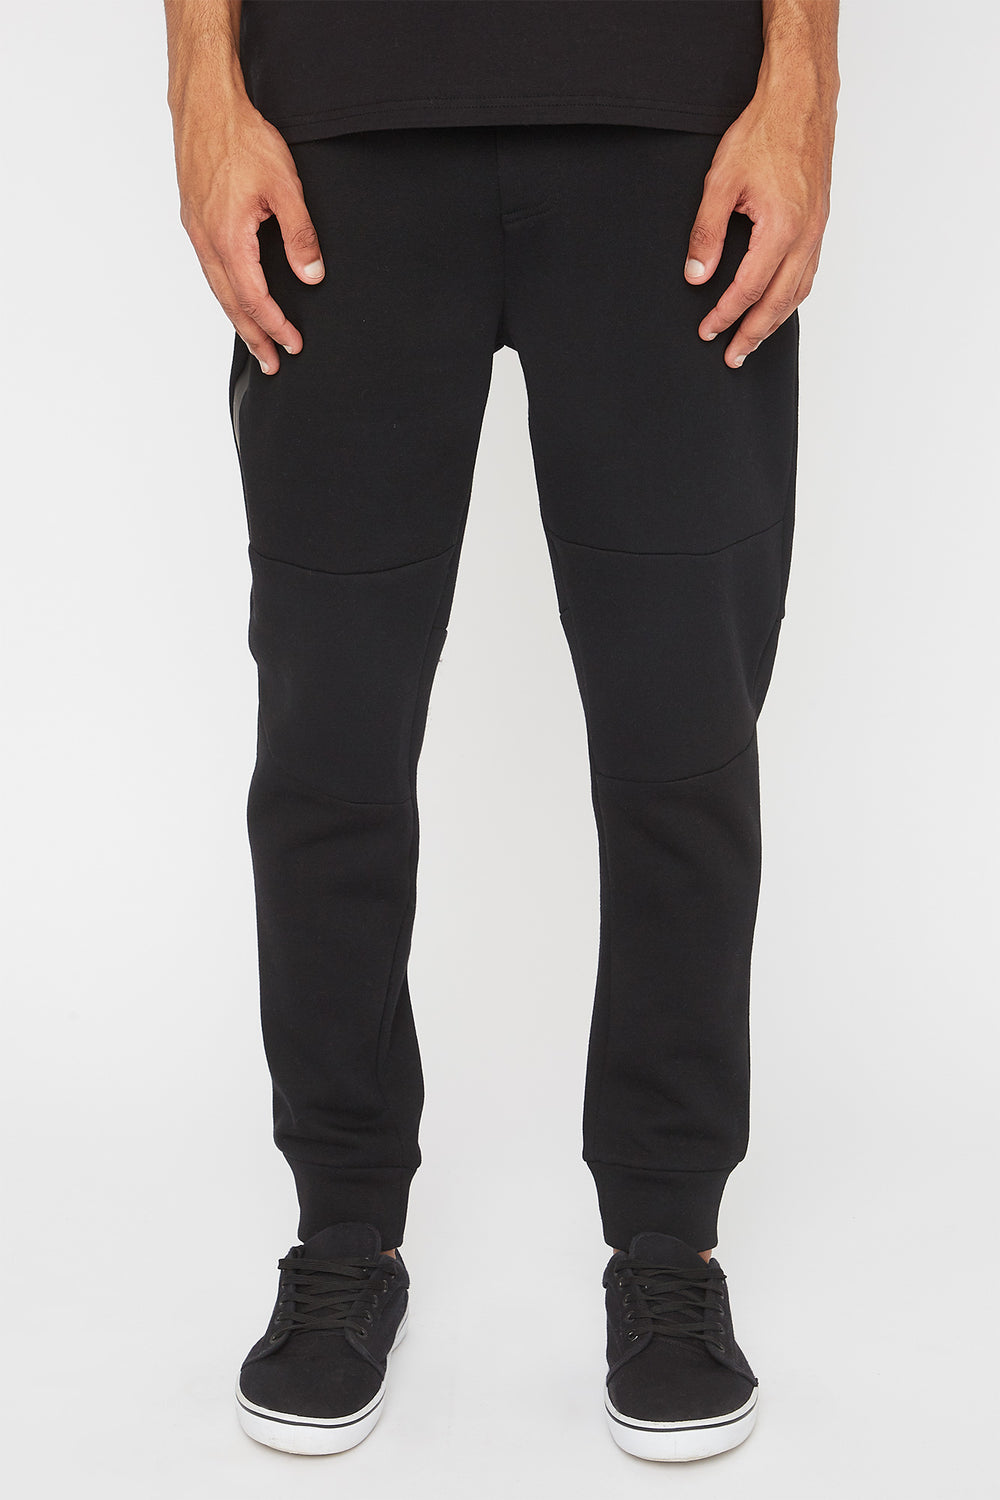 West49 Mens Zip Jogger Black